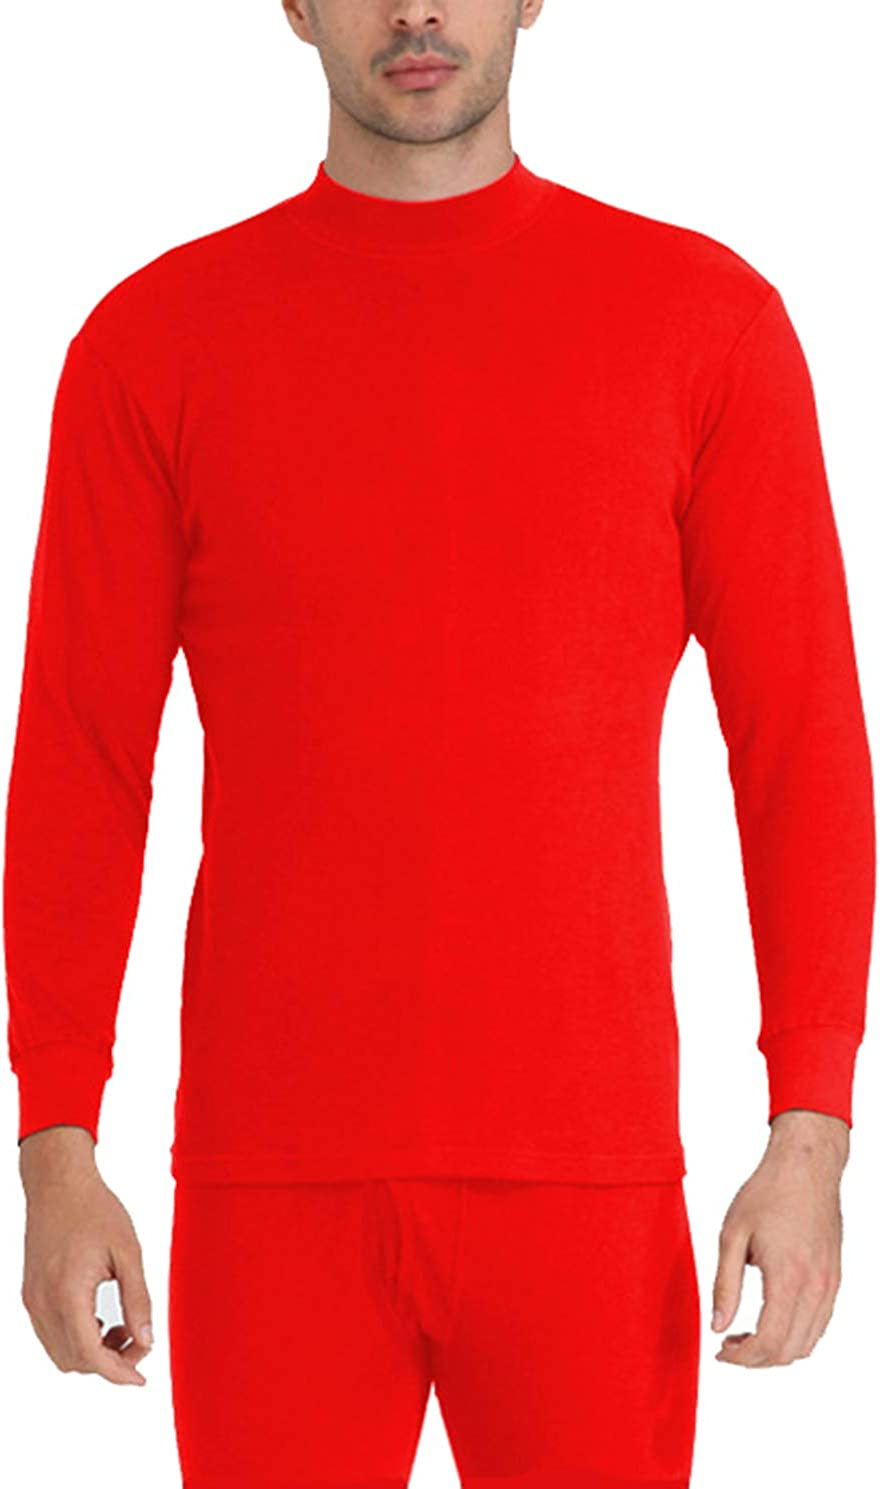 Seaoeey Men's Cotton Thermal Underwear Set Middle-Aged High Neck Base Layer Long Johns